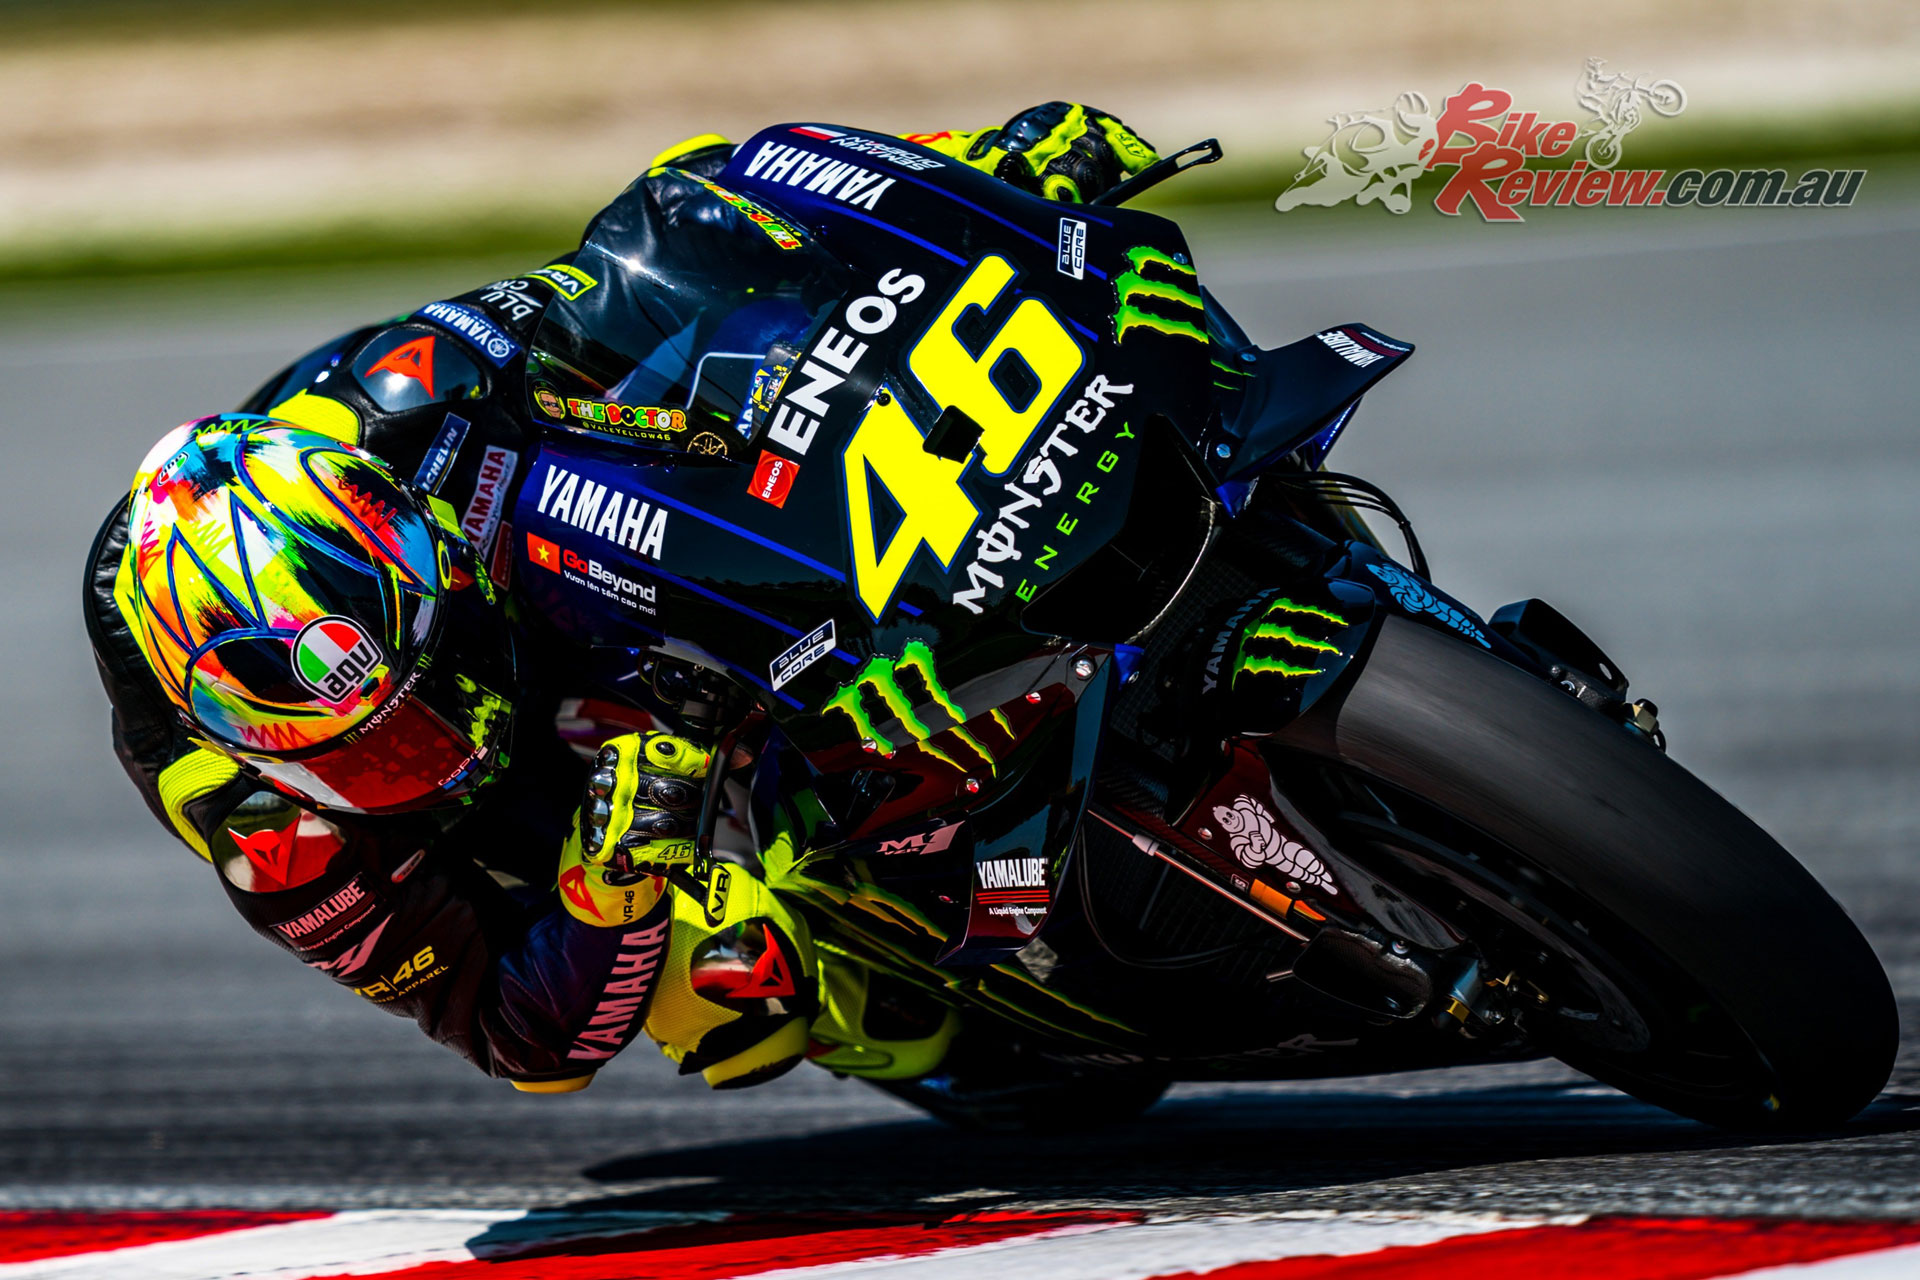 Valentino Rossi - Sepang MotoGP Test Day 1